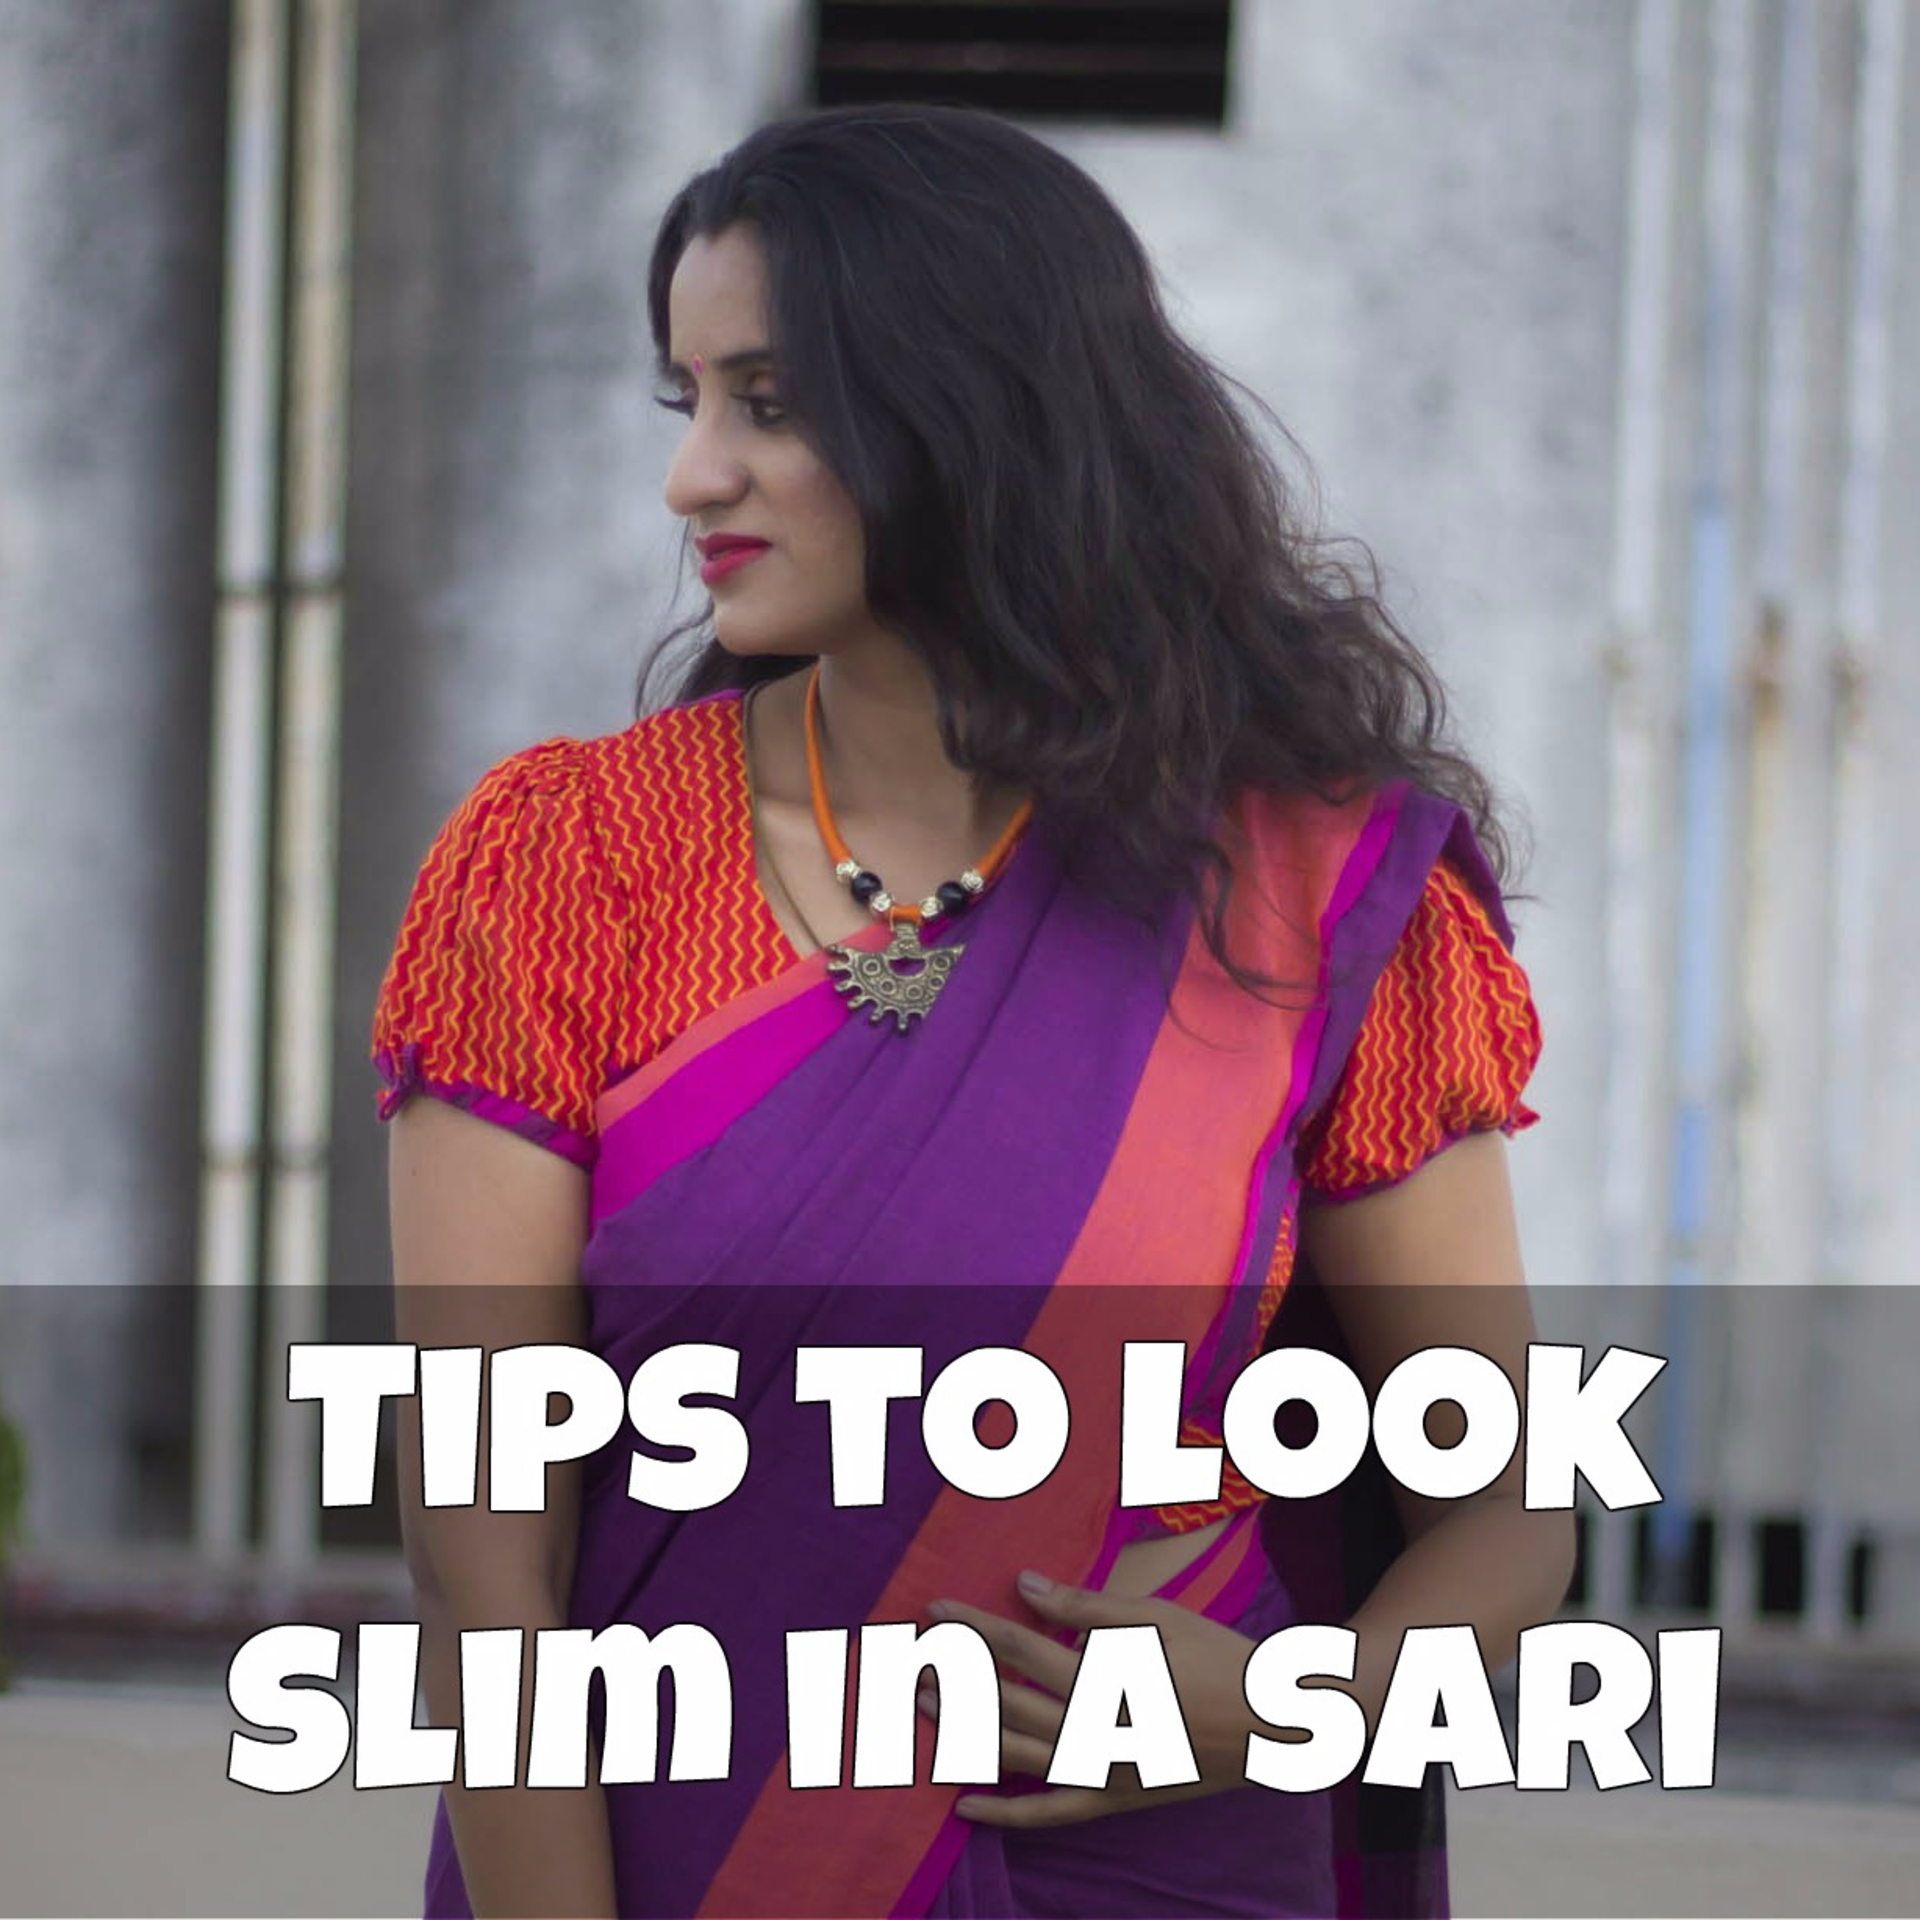 How to stitch blouses to look slim in a sari image